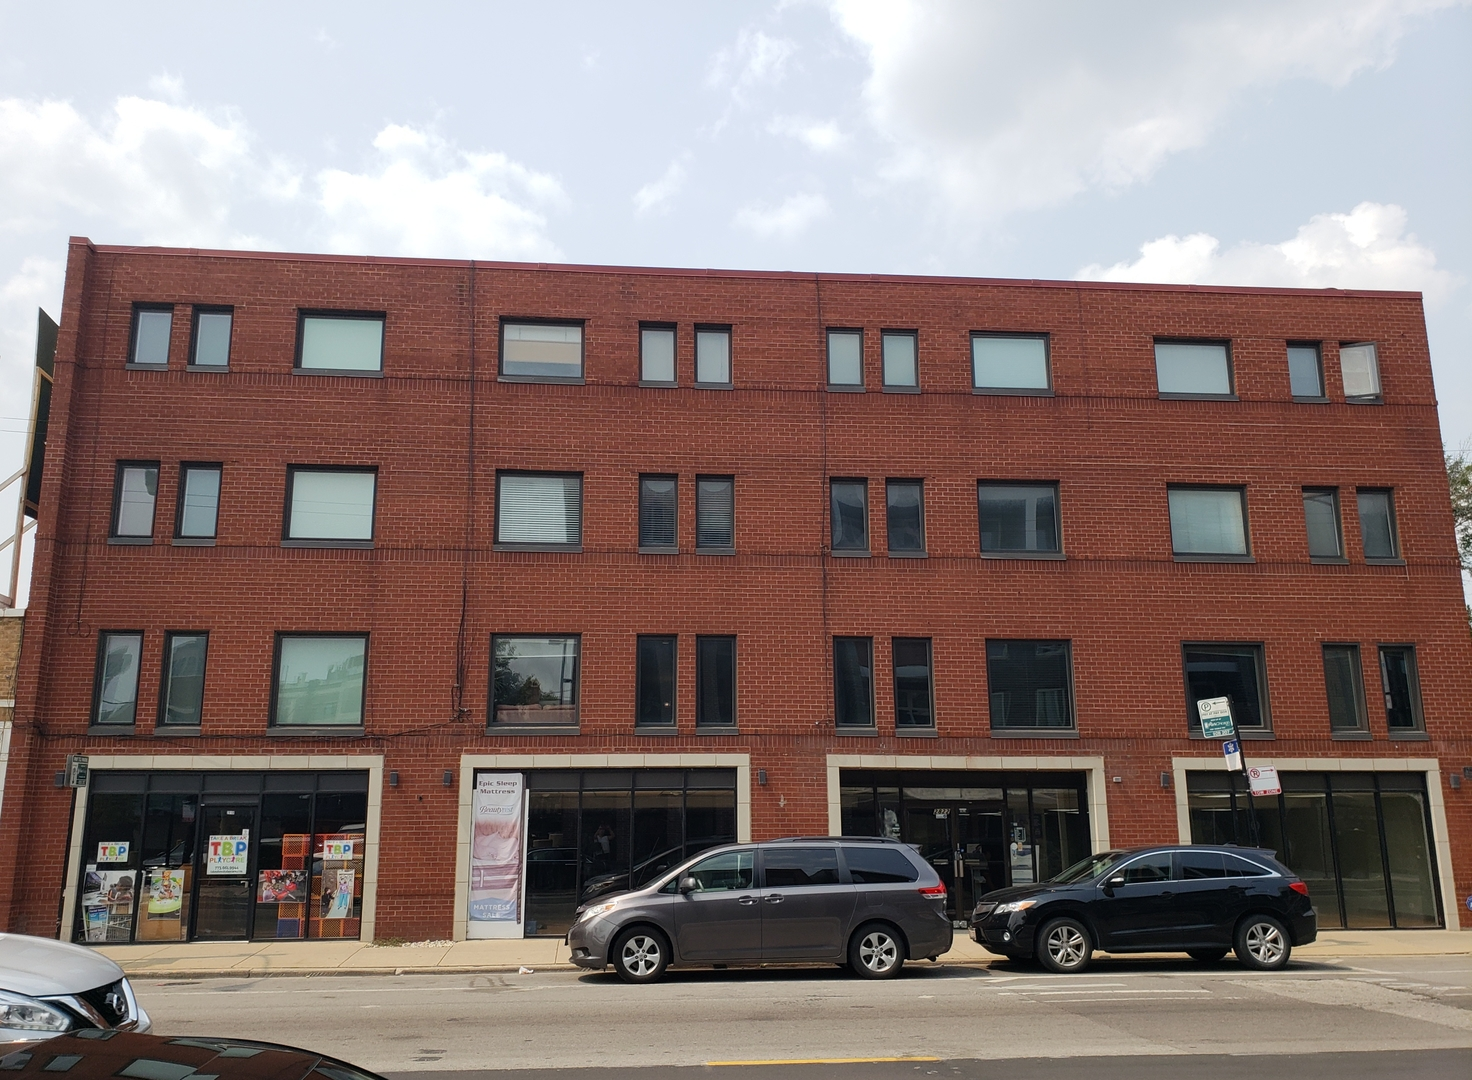 2822 Halsted ,Chicago, Illinois 60657